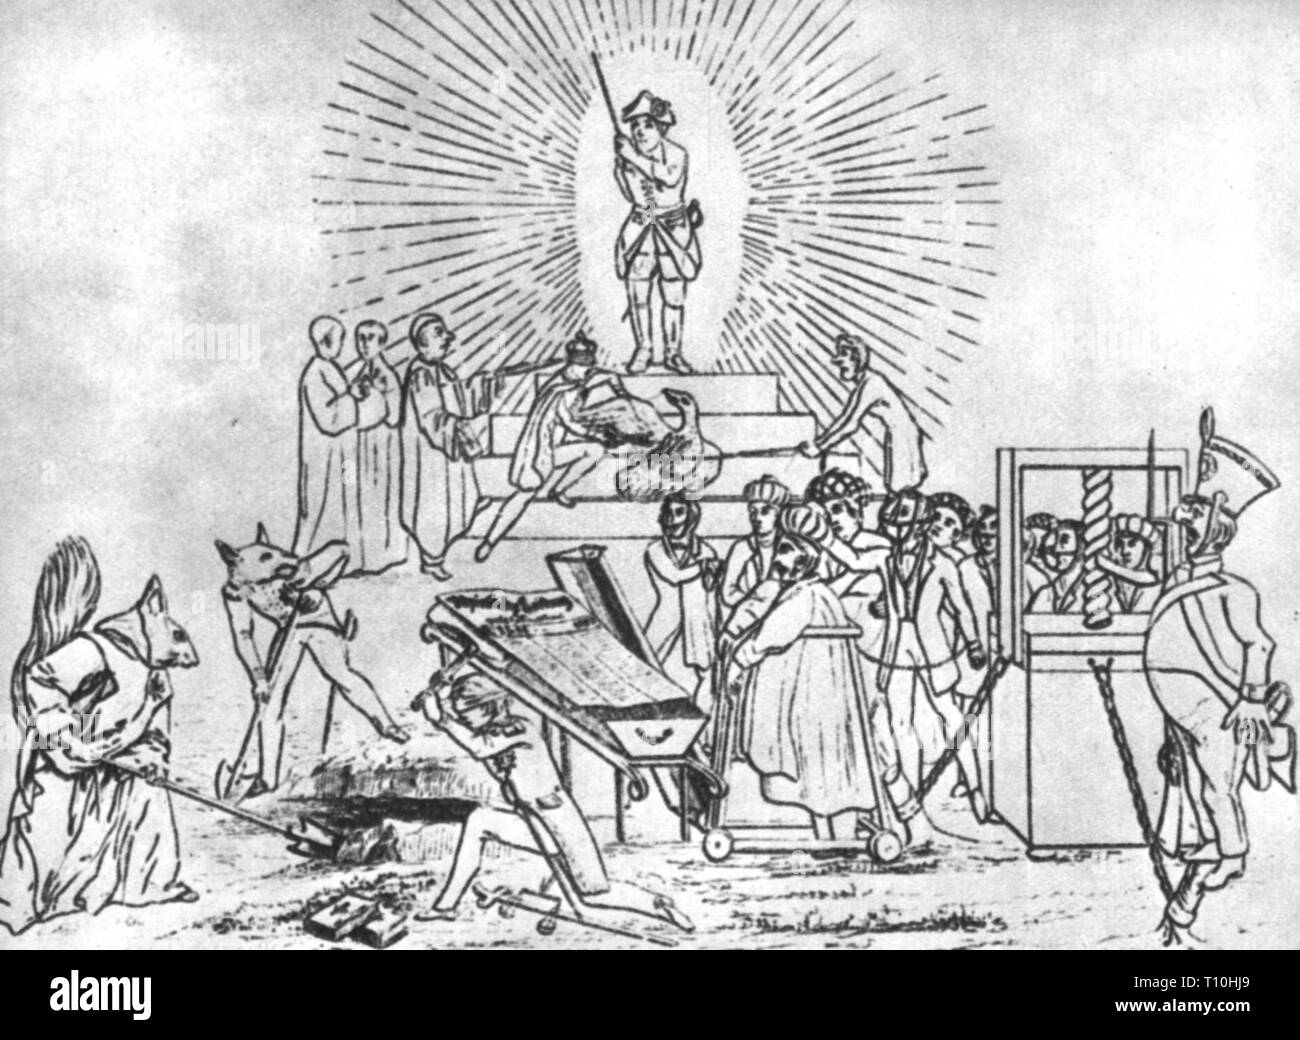 press / media, magazines, caricature, burial of the 'Rheinische Zeitung', drawing, 1843, Additional-Rights-Clearance-Info-Not-Available - Stock Image